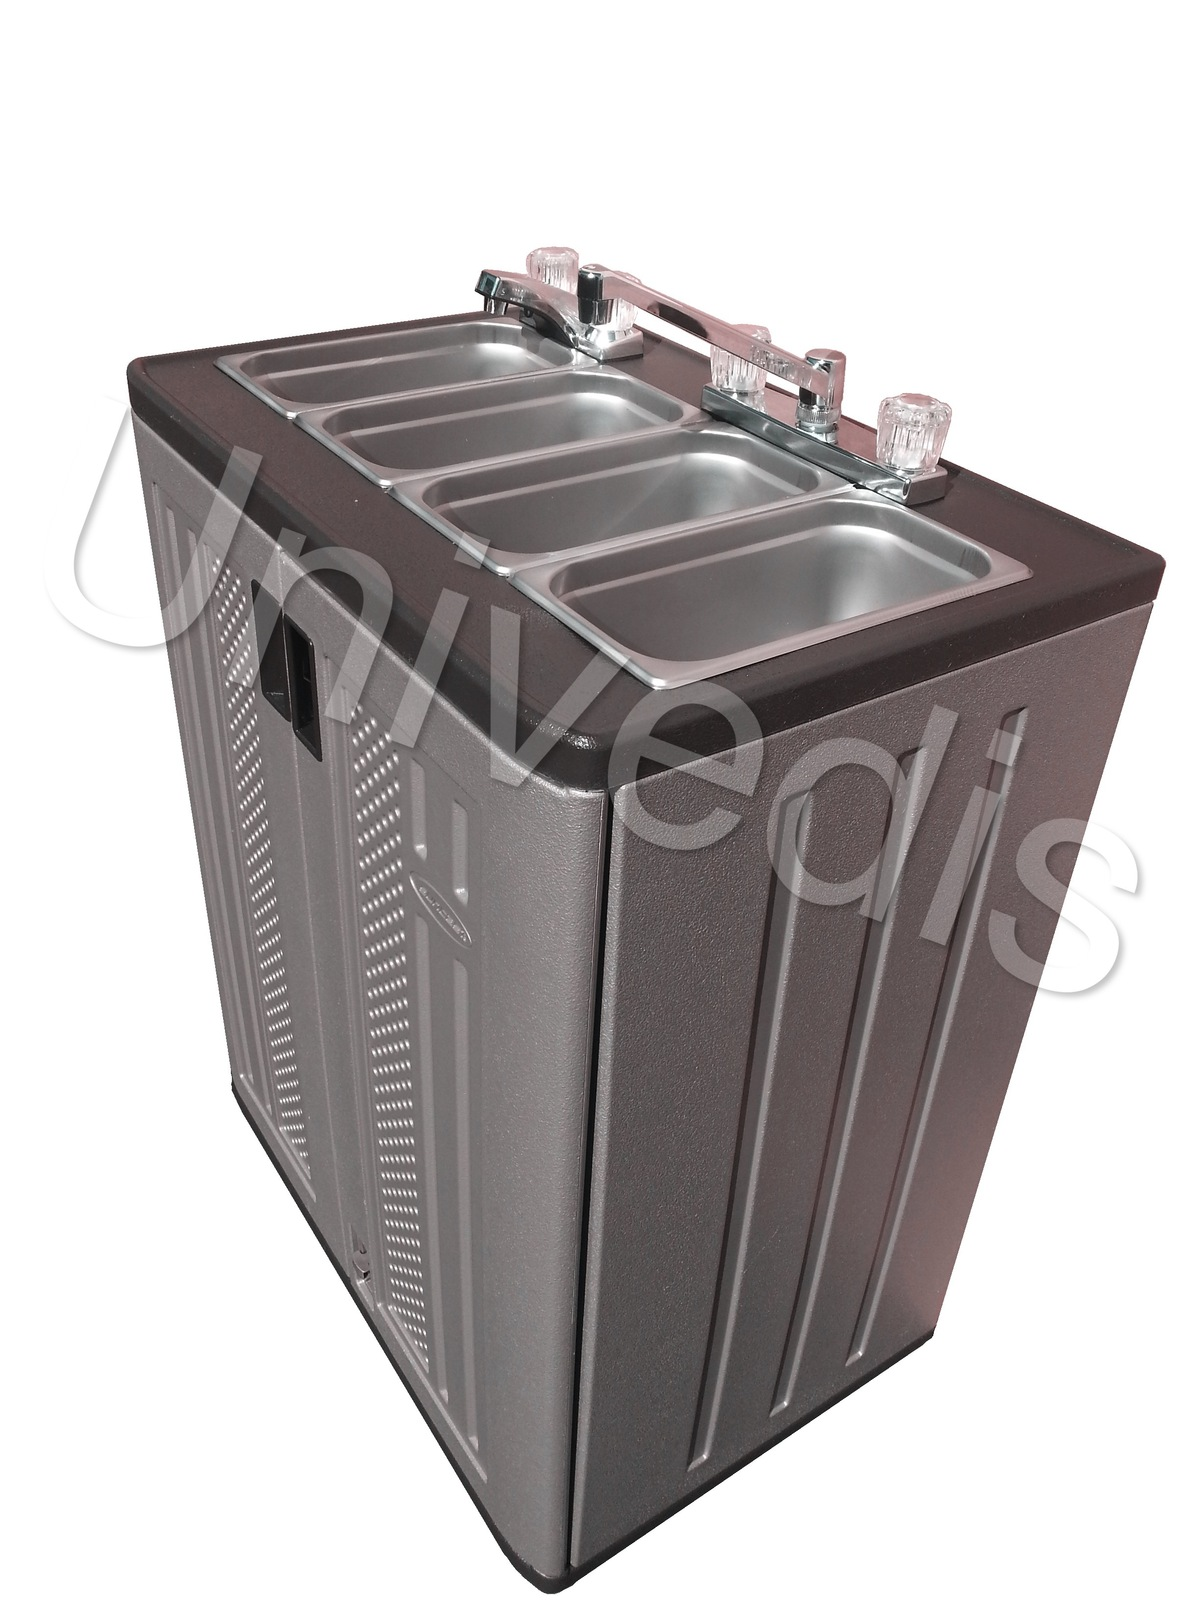 Portable Sink Mobile Concession compartment hot water ... Sink With Water